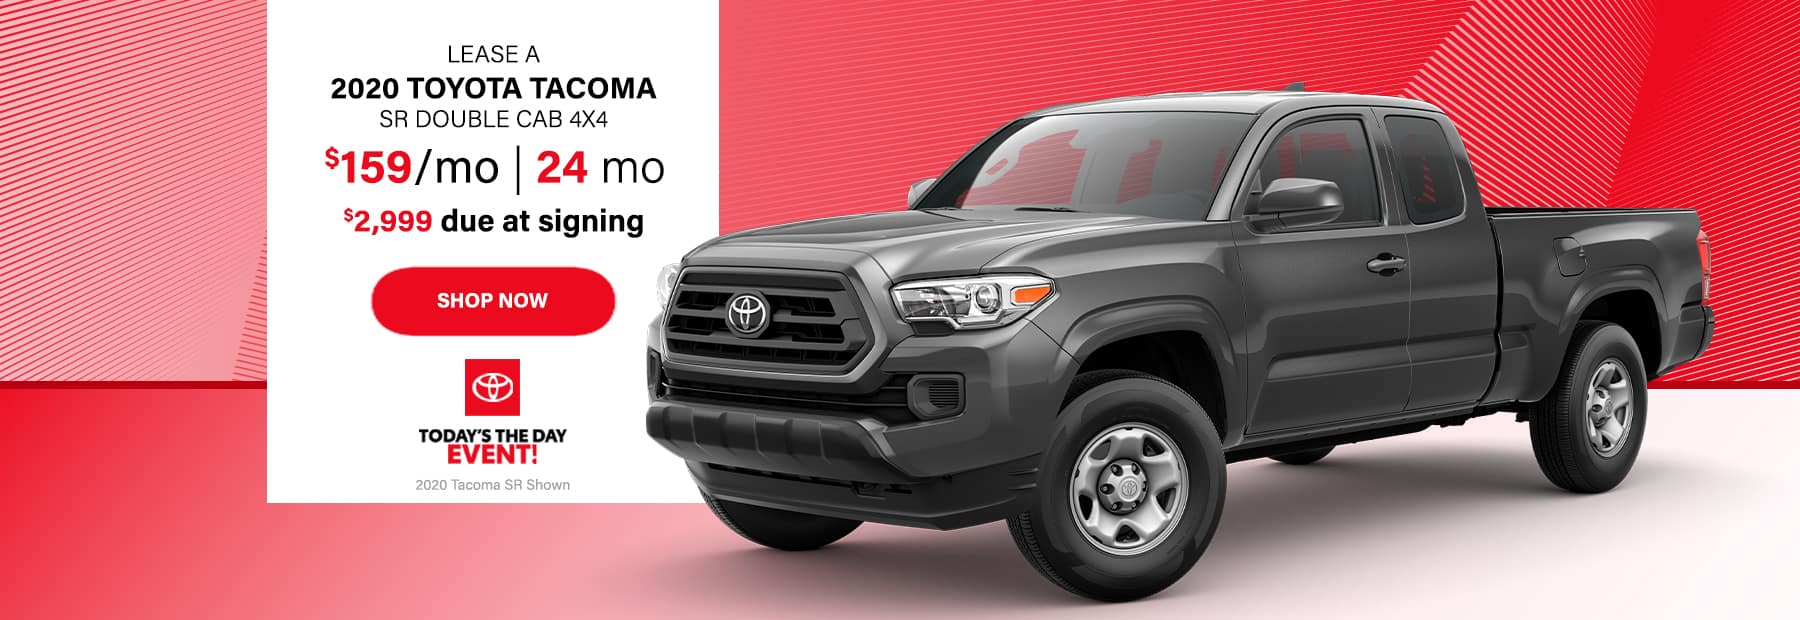 Lease a 2020 Toyota Tacoma SR Double Cab 4x4 Pickup Truck for $159/mo. for 24 mos. with $2,999 down